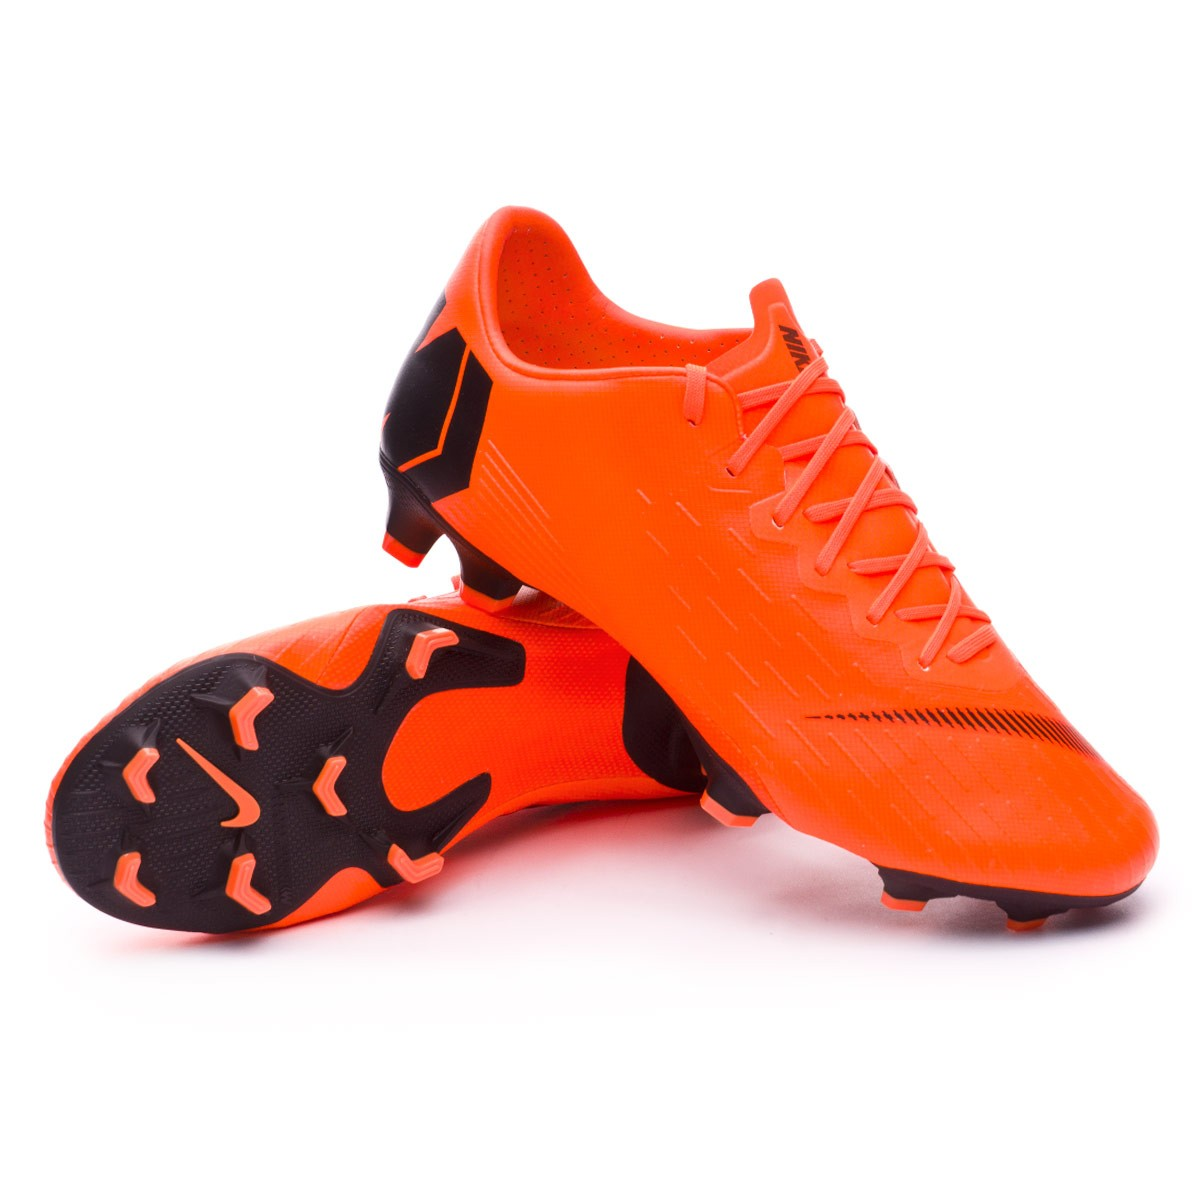 f2894d33377d Football Boots Nike Mercurial Vapor XII Pro FG Total orange-Black ...